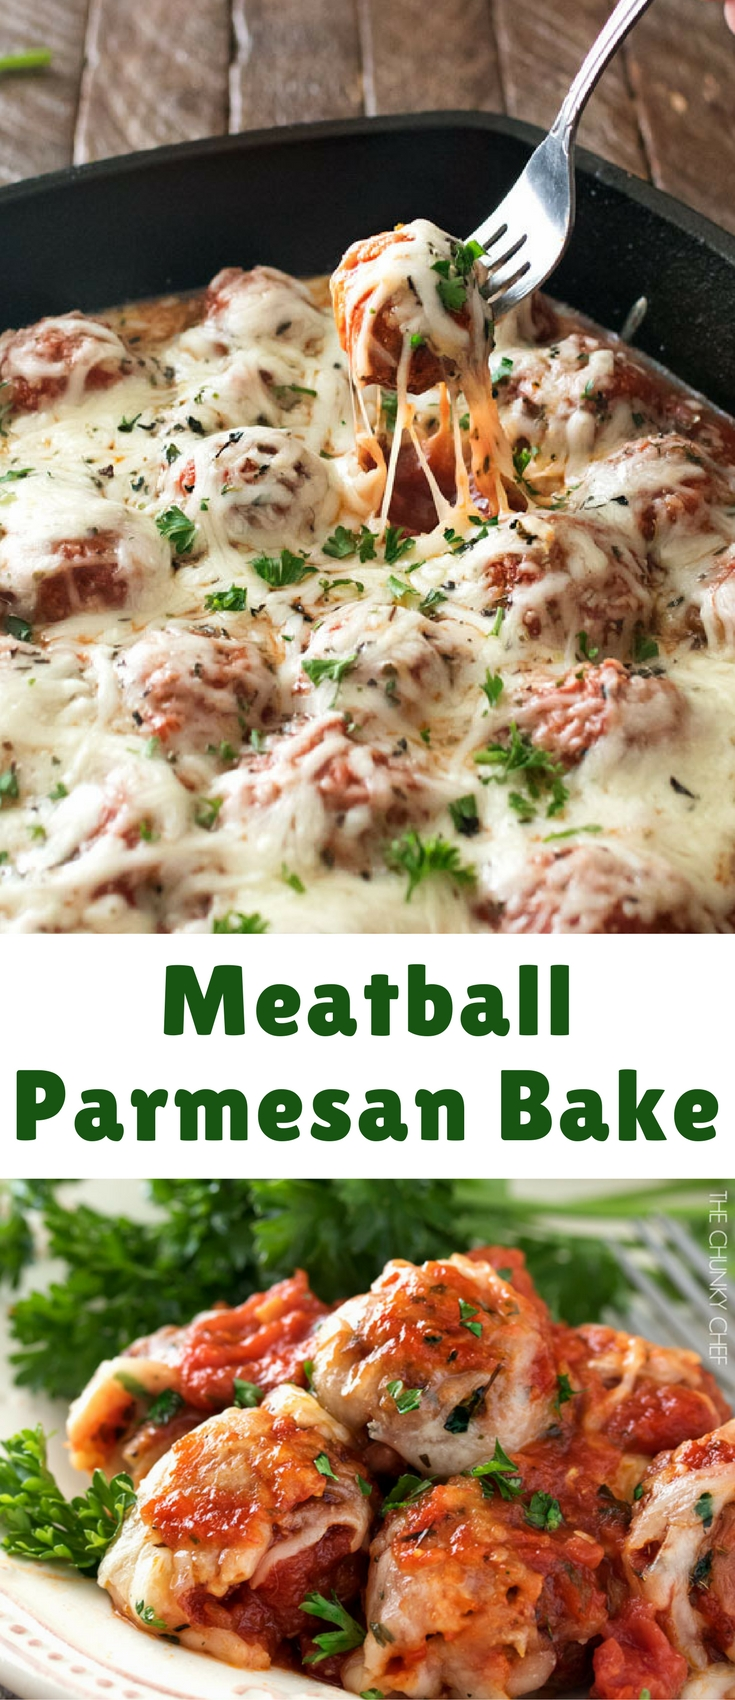 This hearty meatball Parmesan bake combines homemade meatballs, marinara, and Italian cheeses in one skillet or pan. Perfect for subs, pasta, and more!